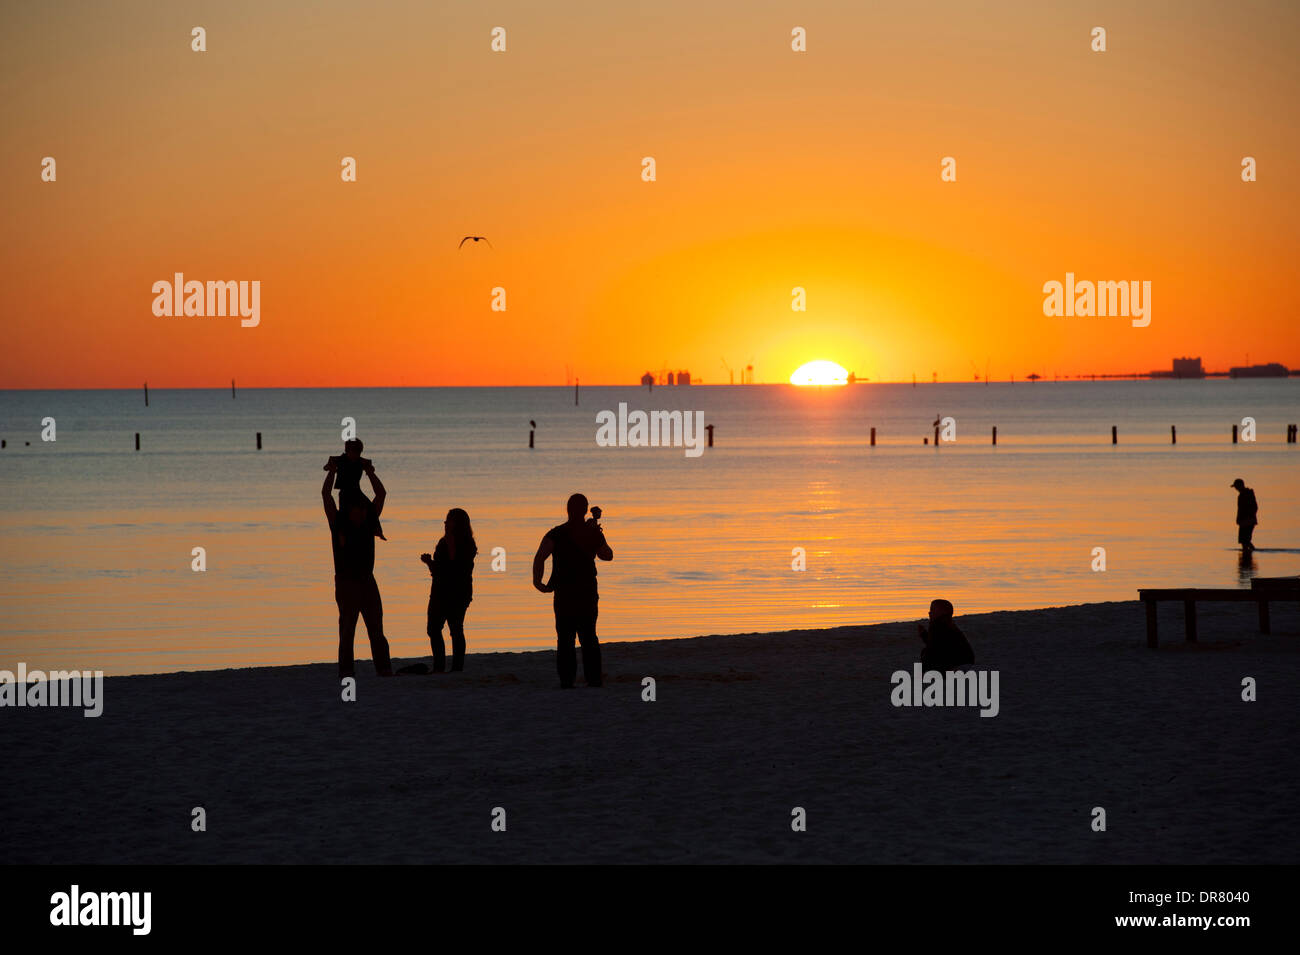 usa-mississippi-ms-biloxi-beach-at-sunset-on-the-gulf-of-mexico-shores-DR8040.jpg